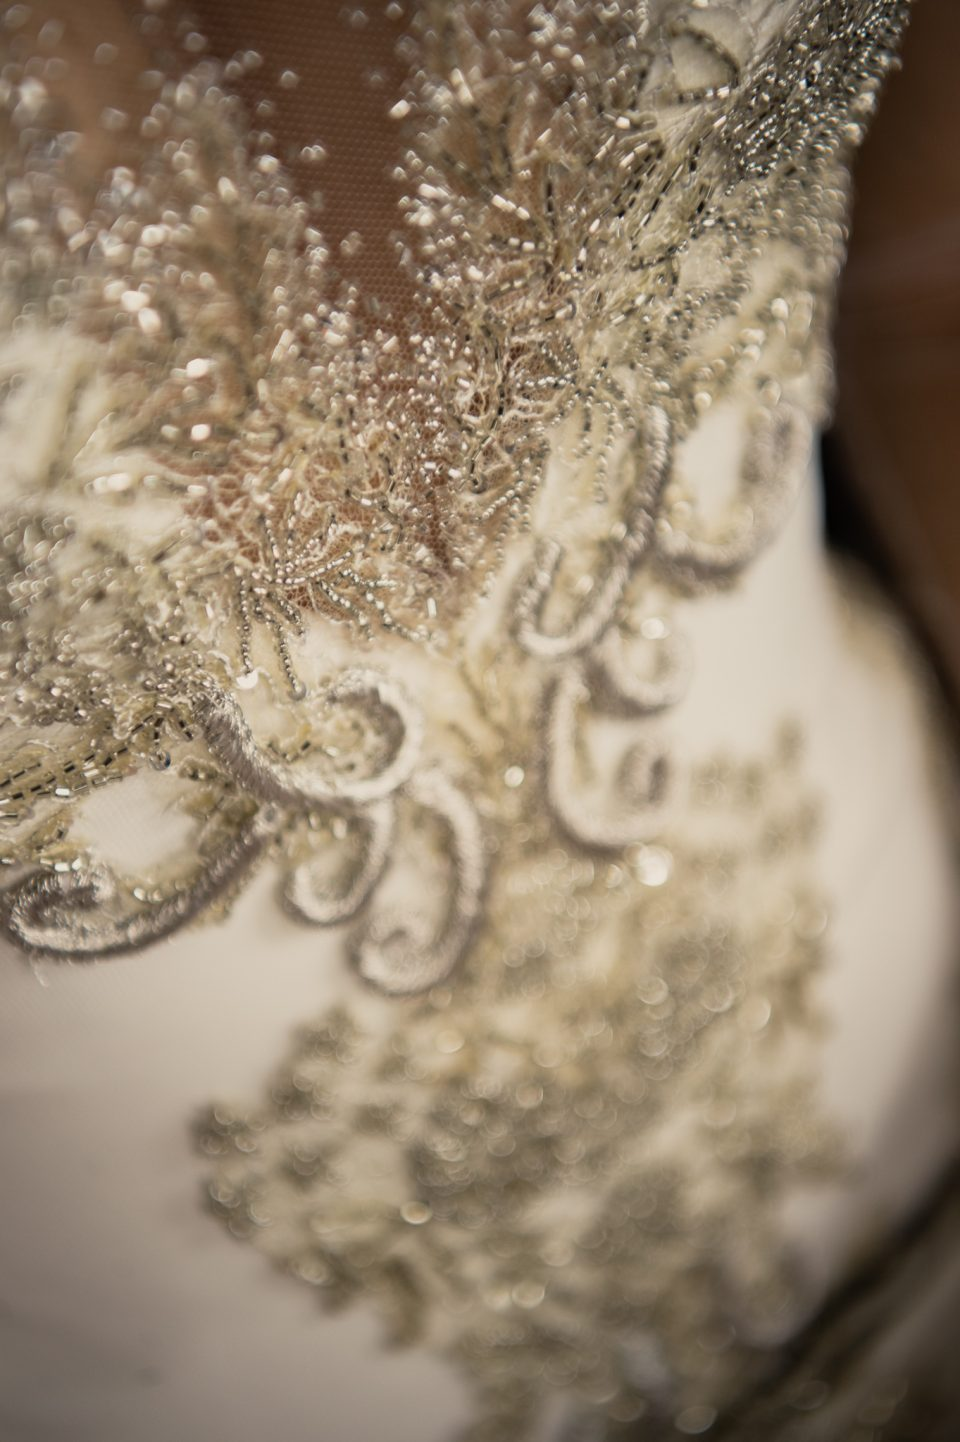 Close detail photograph of Annette of Melbourne wedding dress, showing silver embroidery and beading